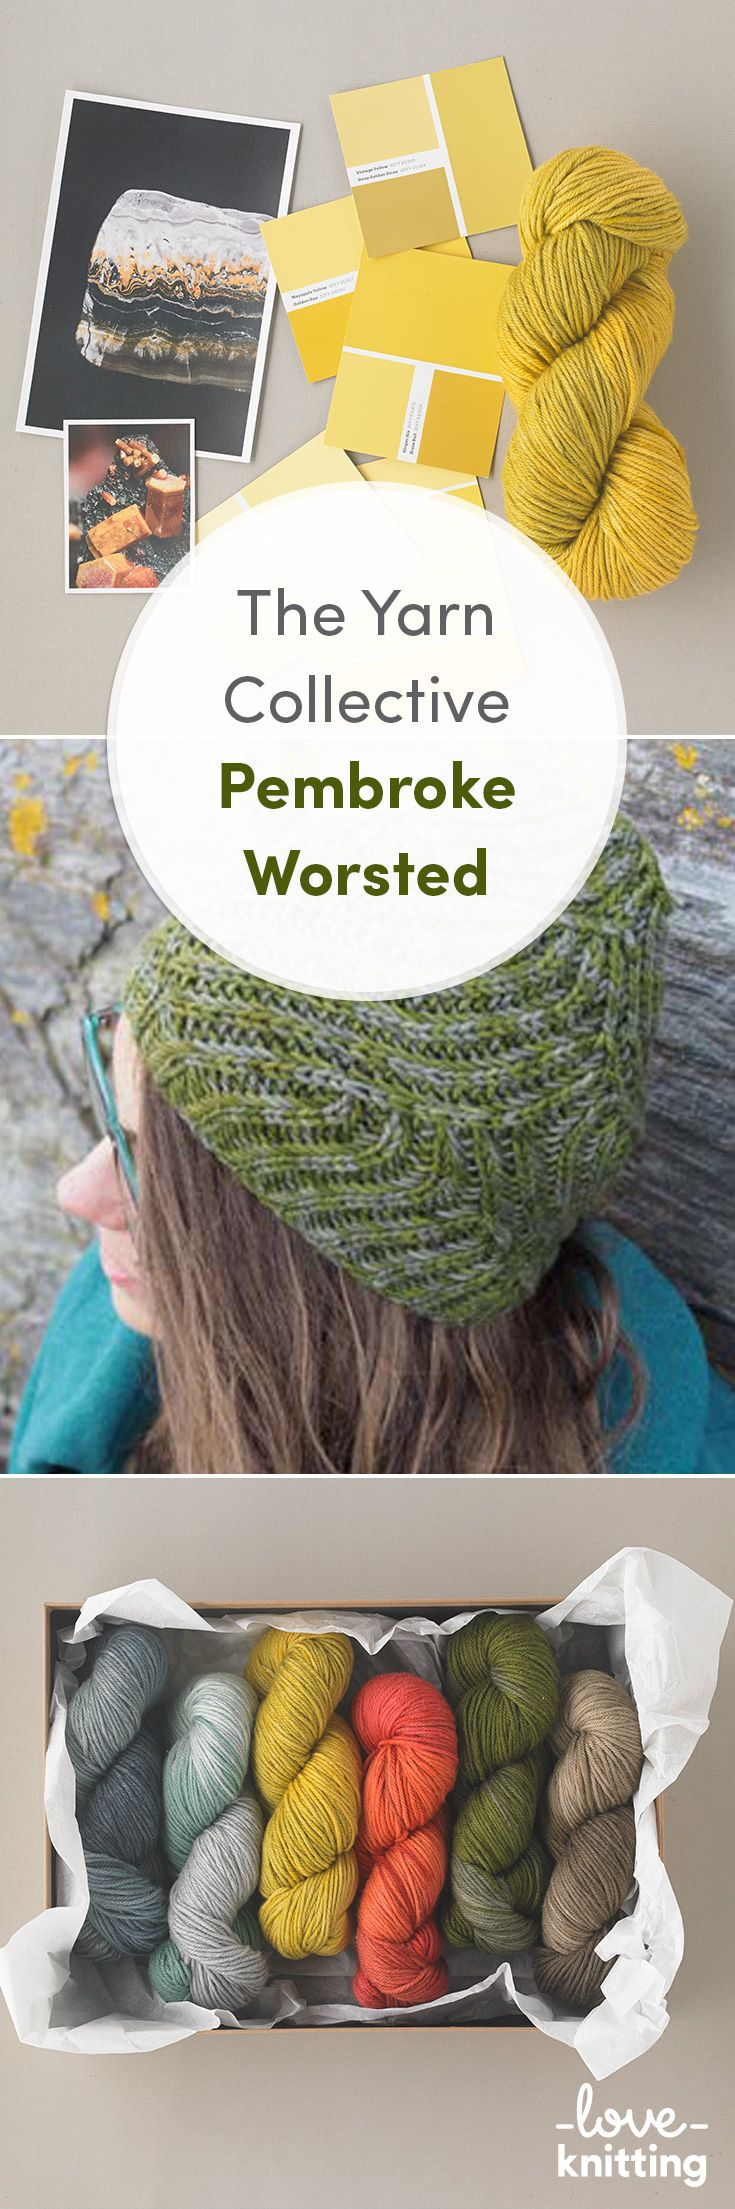 58 best the yarn collective knitting patterns images on pinterest the yarn collective pembroke worsted bankloansurffo Gallery